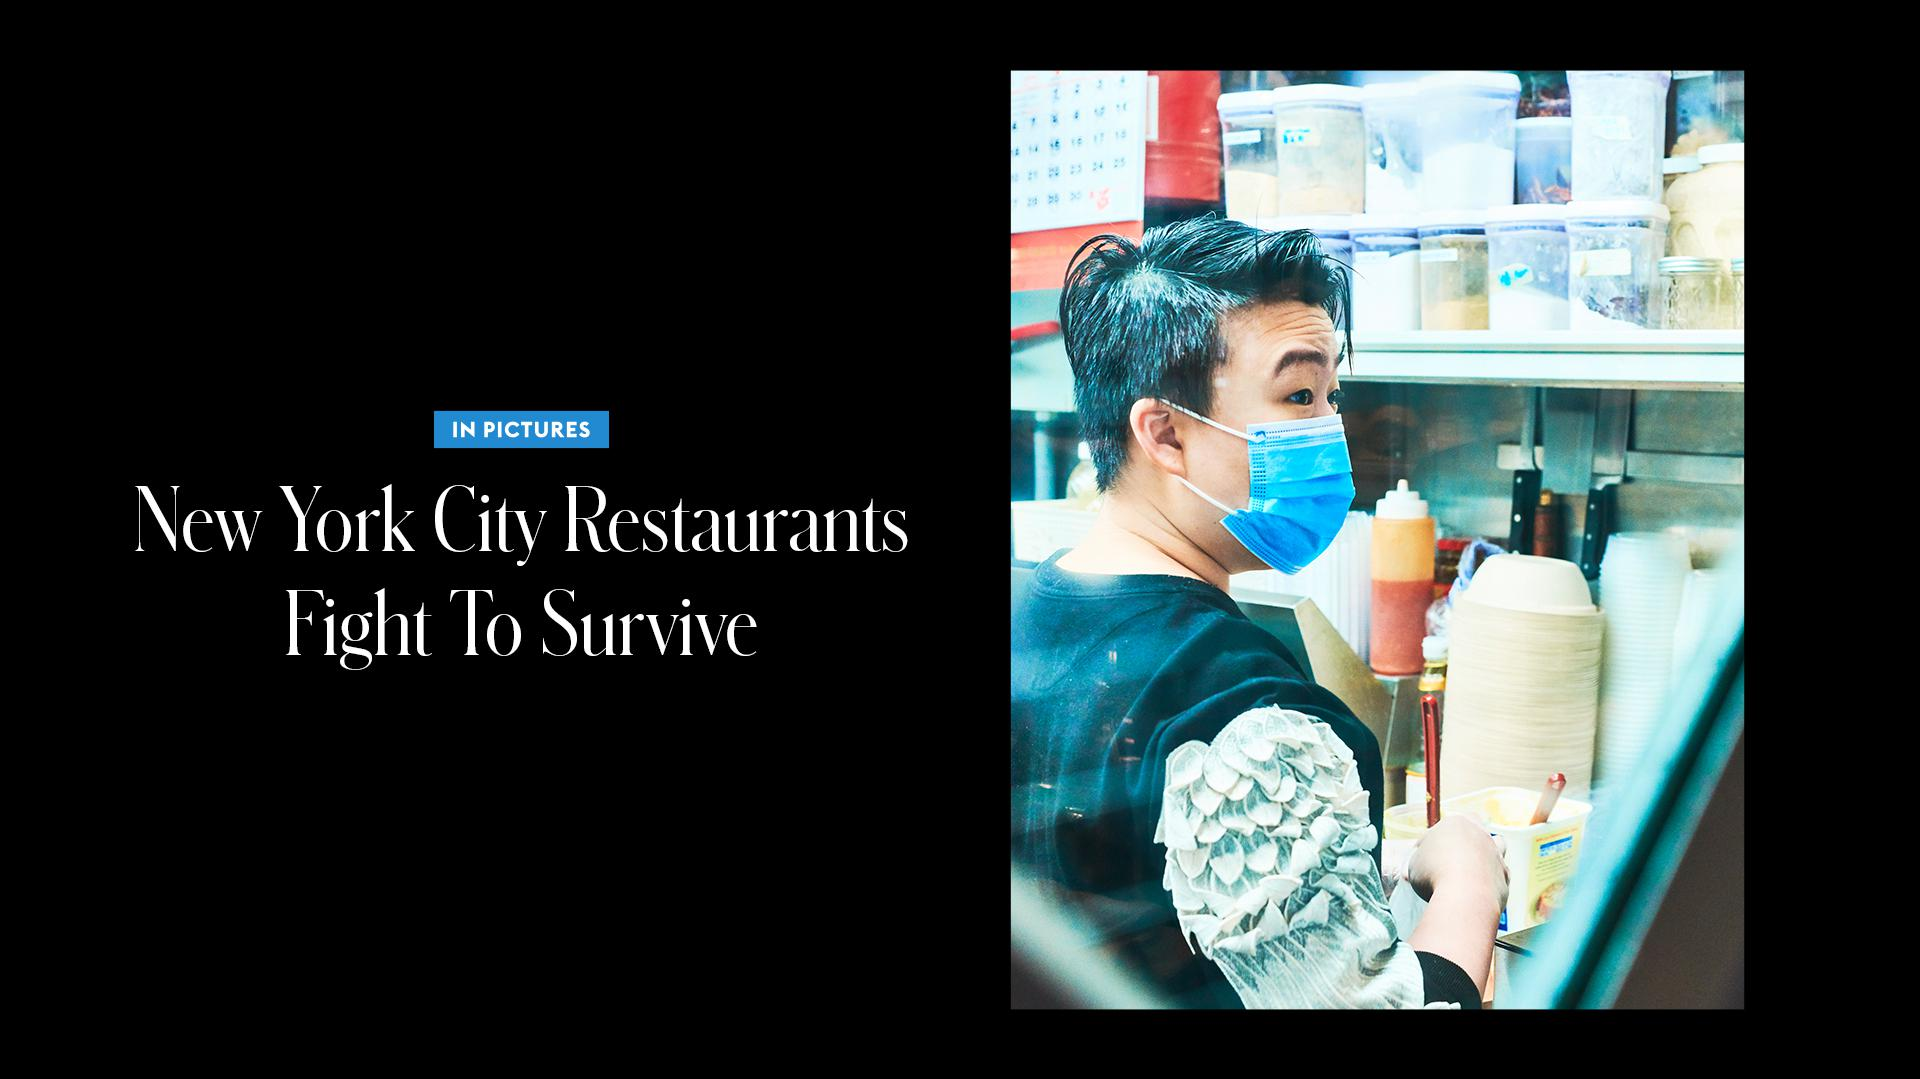 In Pictures: New York City Restaurants Fight To Survive